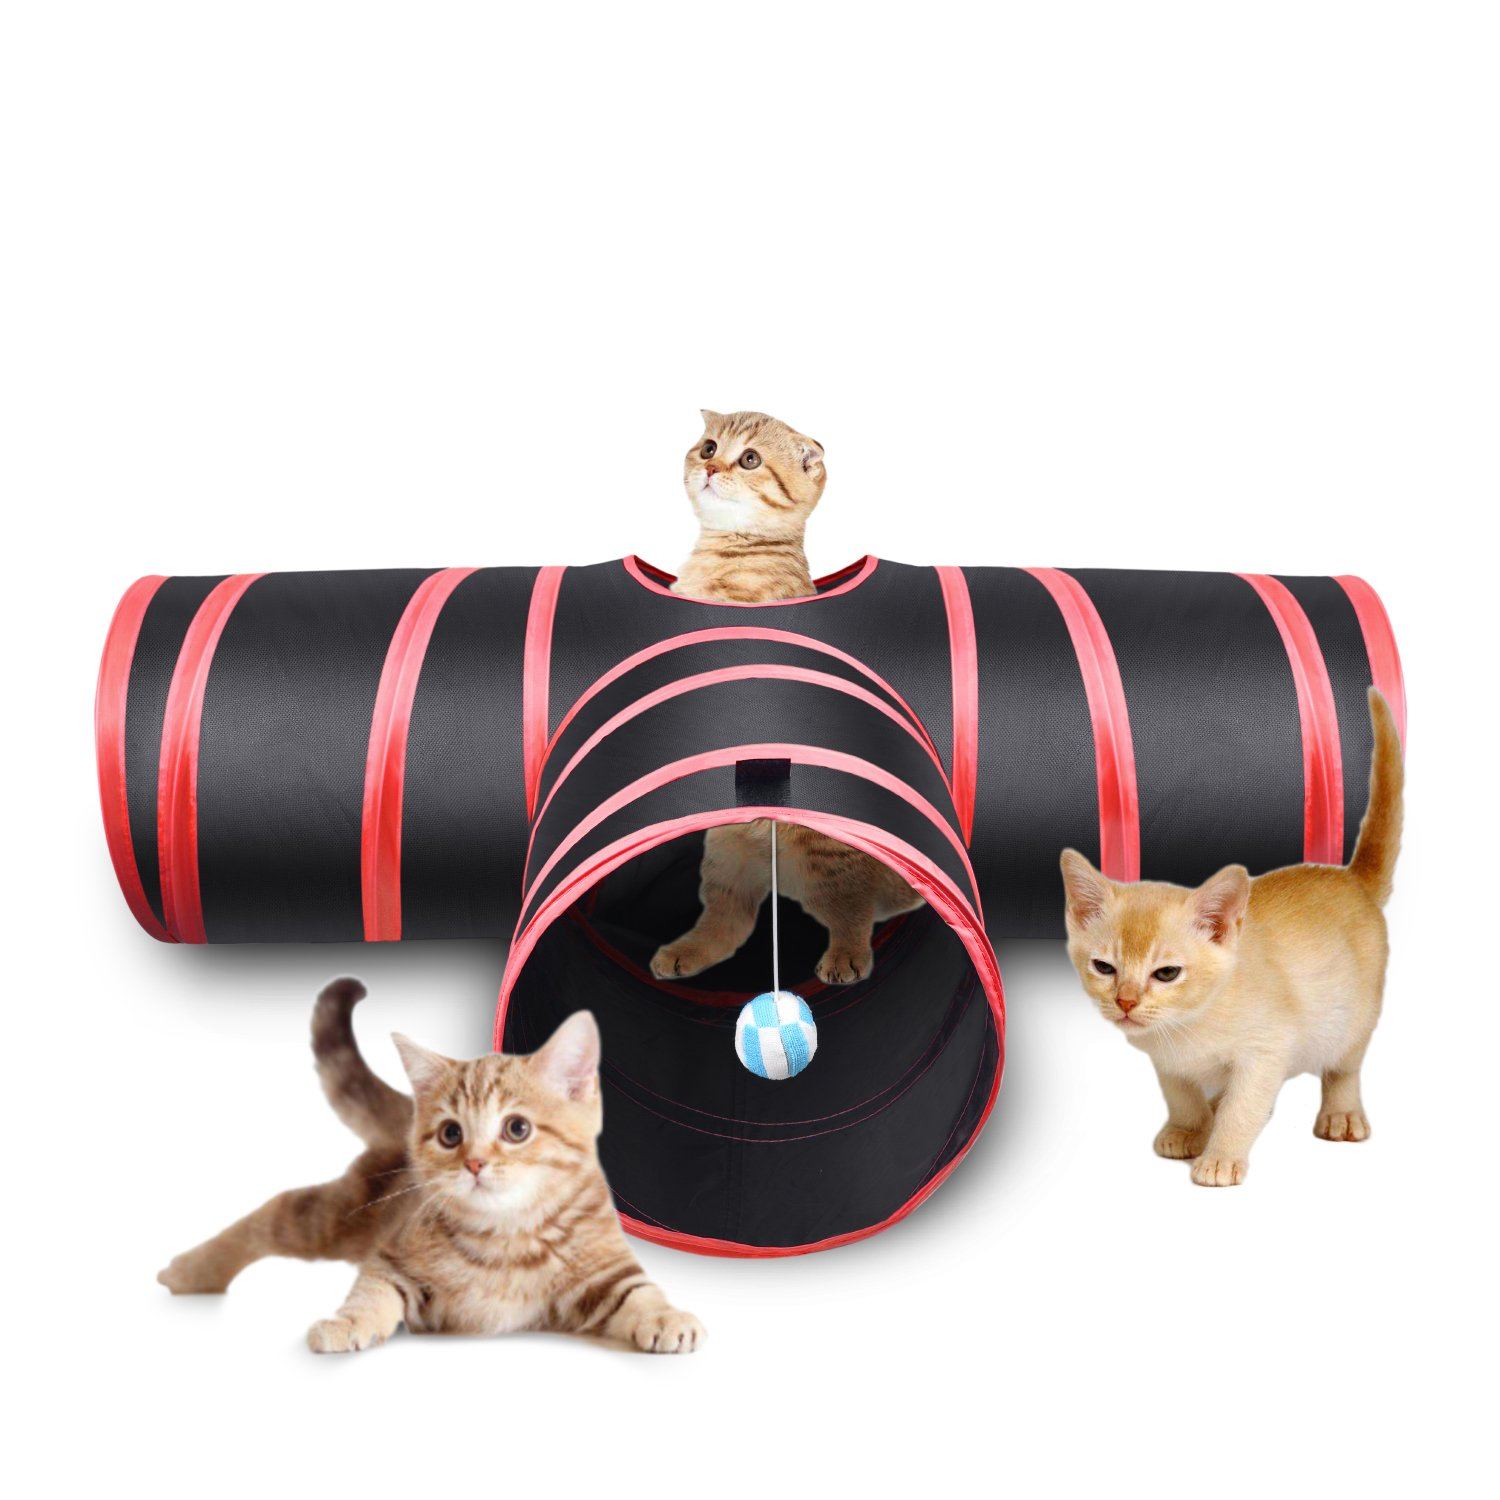 Creaker 3 Way Cat Tunnel, Collapsible Pet Toy Tunnel with Ball for Cat, Puppy, Kitty, Kitten, Rabbit (Red)